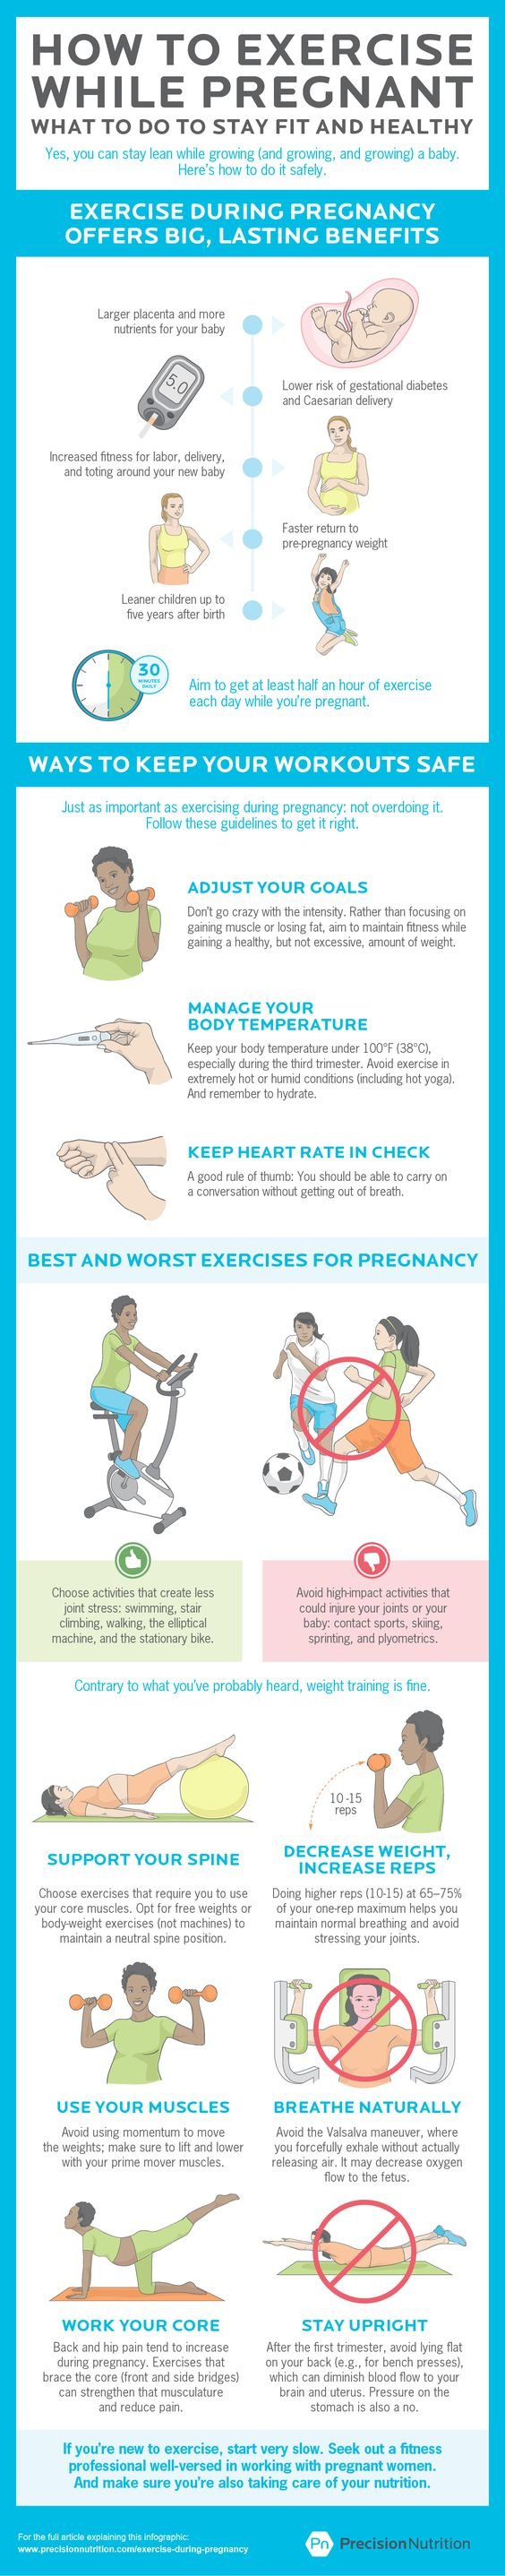 Yes, you can — and should — exercise during pregnancy. Here's how to stay fit while keeping your baby (and yourself) safe and healthy.